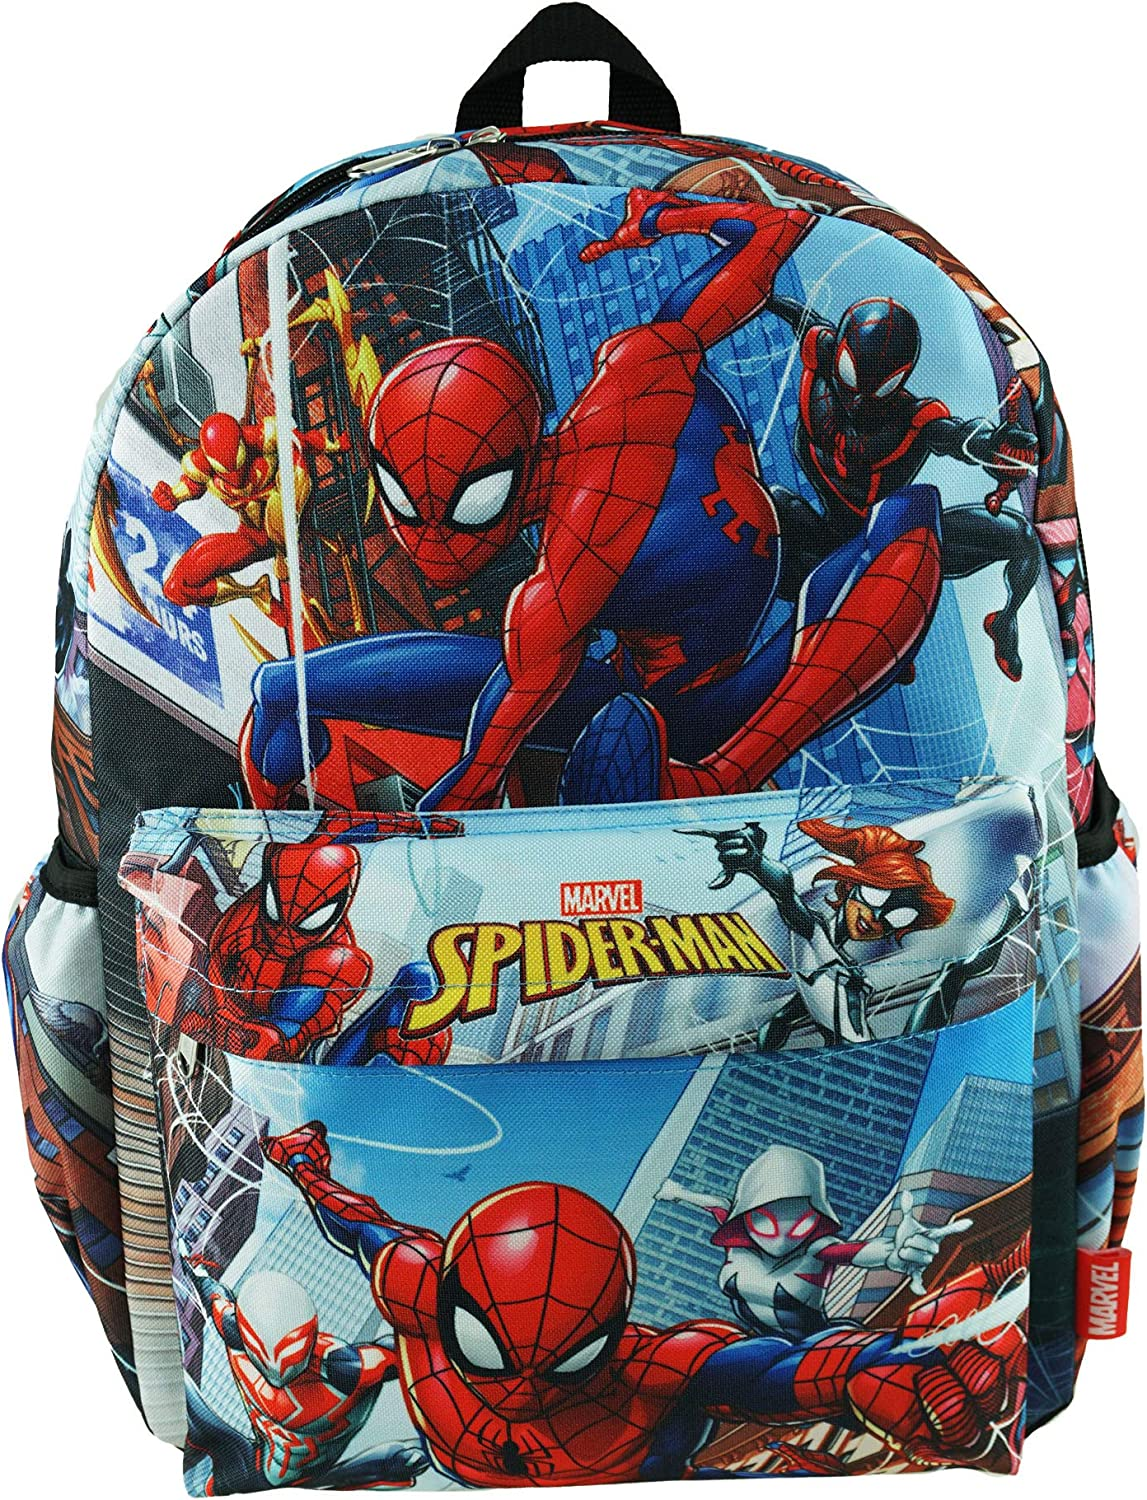 "Spider-Man Deluxe Oversize Print Large 16"" Backpack with Laptop Compartment - A17704"